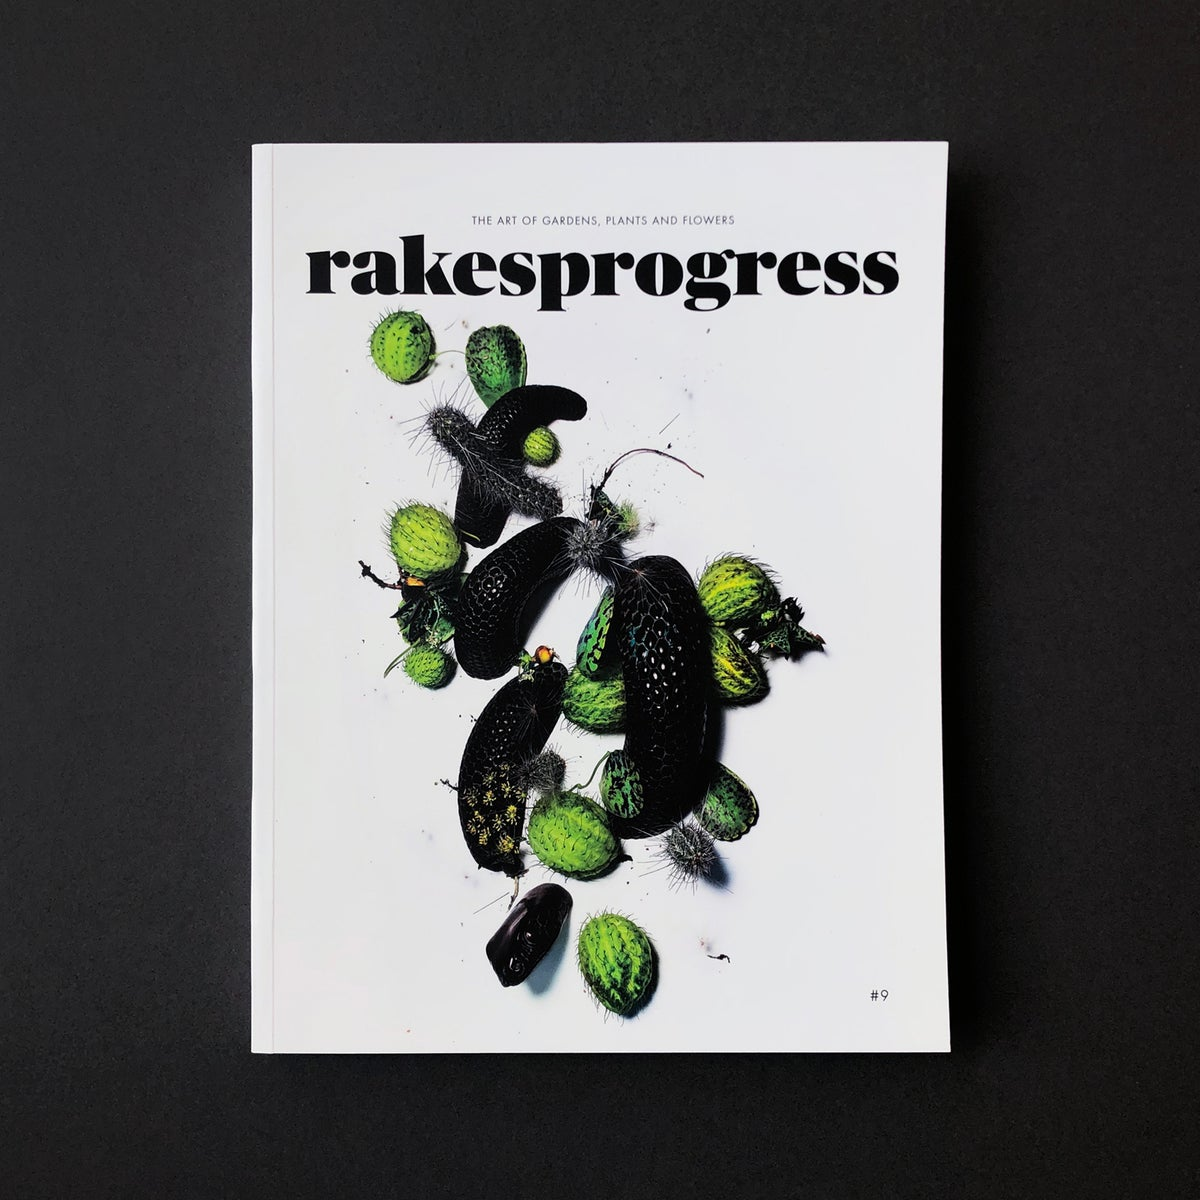 Image of 'Rakesprogress' Magazine.